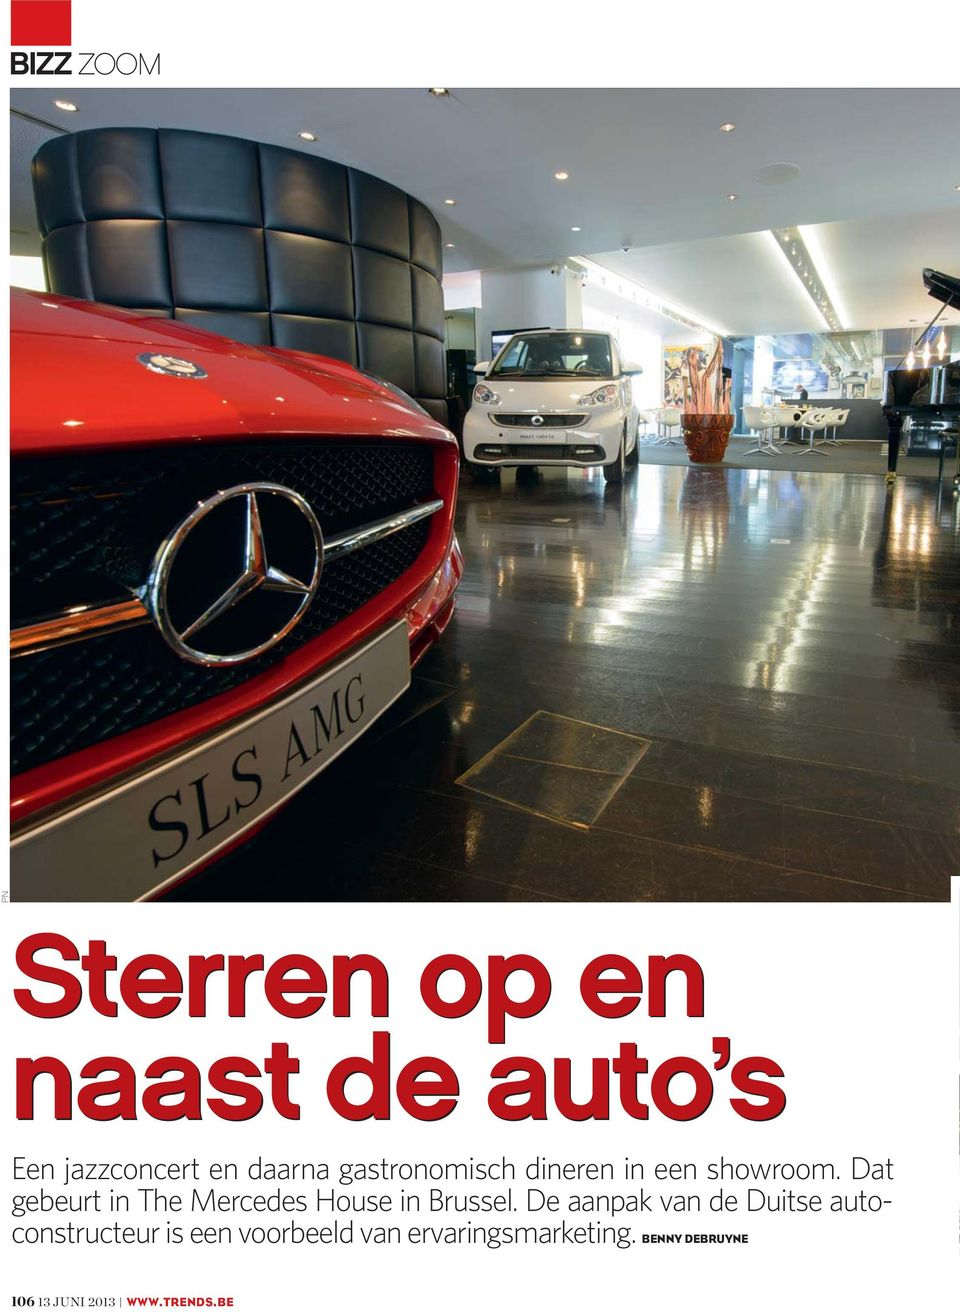 Dat gebeurt in The Mercedes House in Brussel.